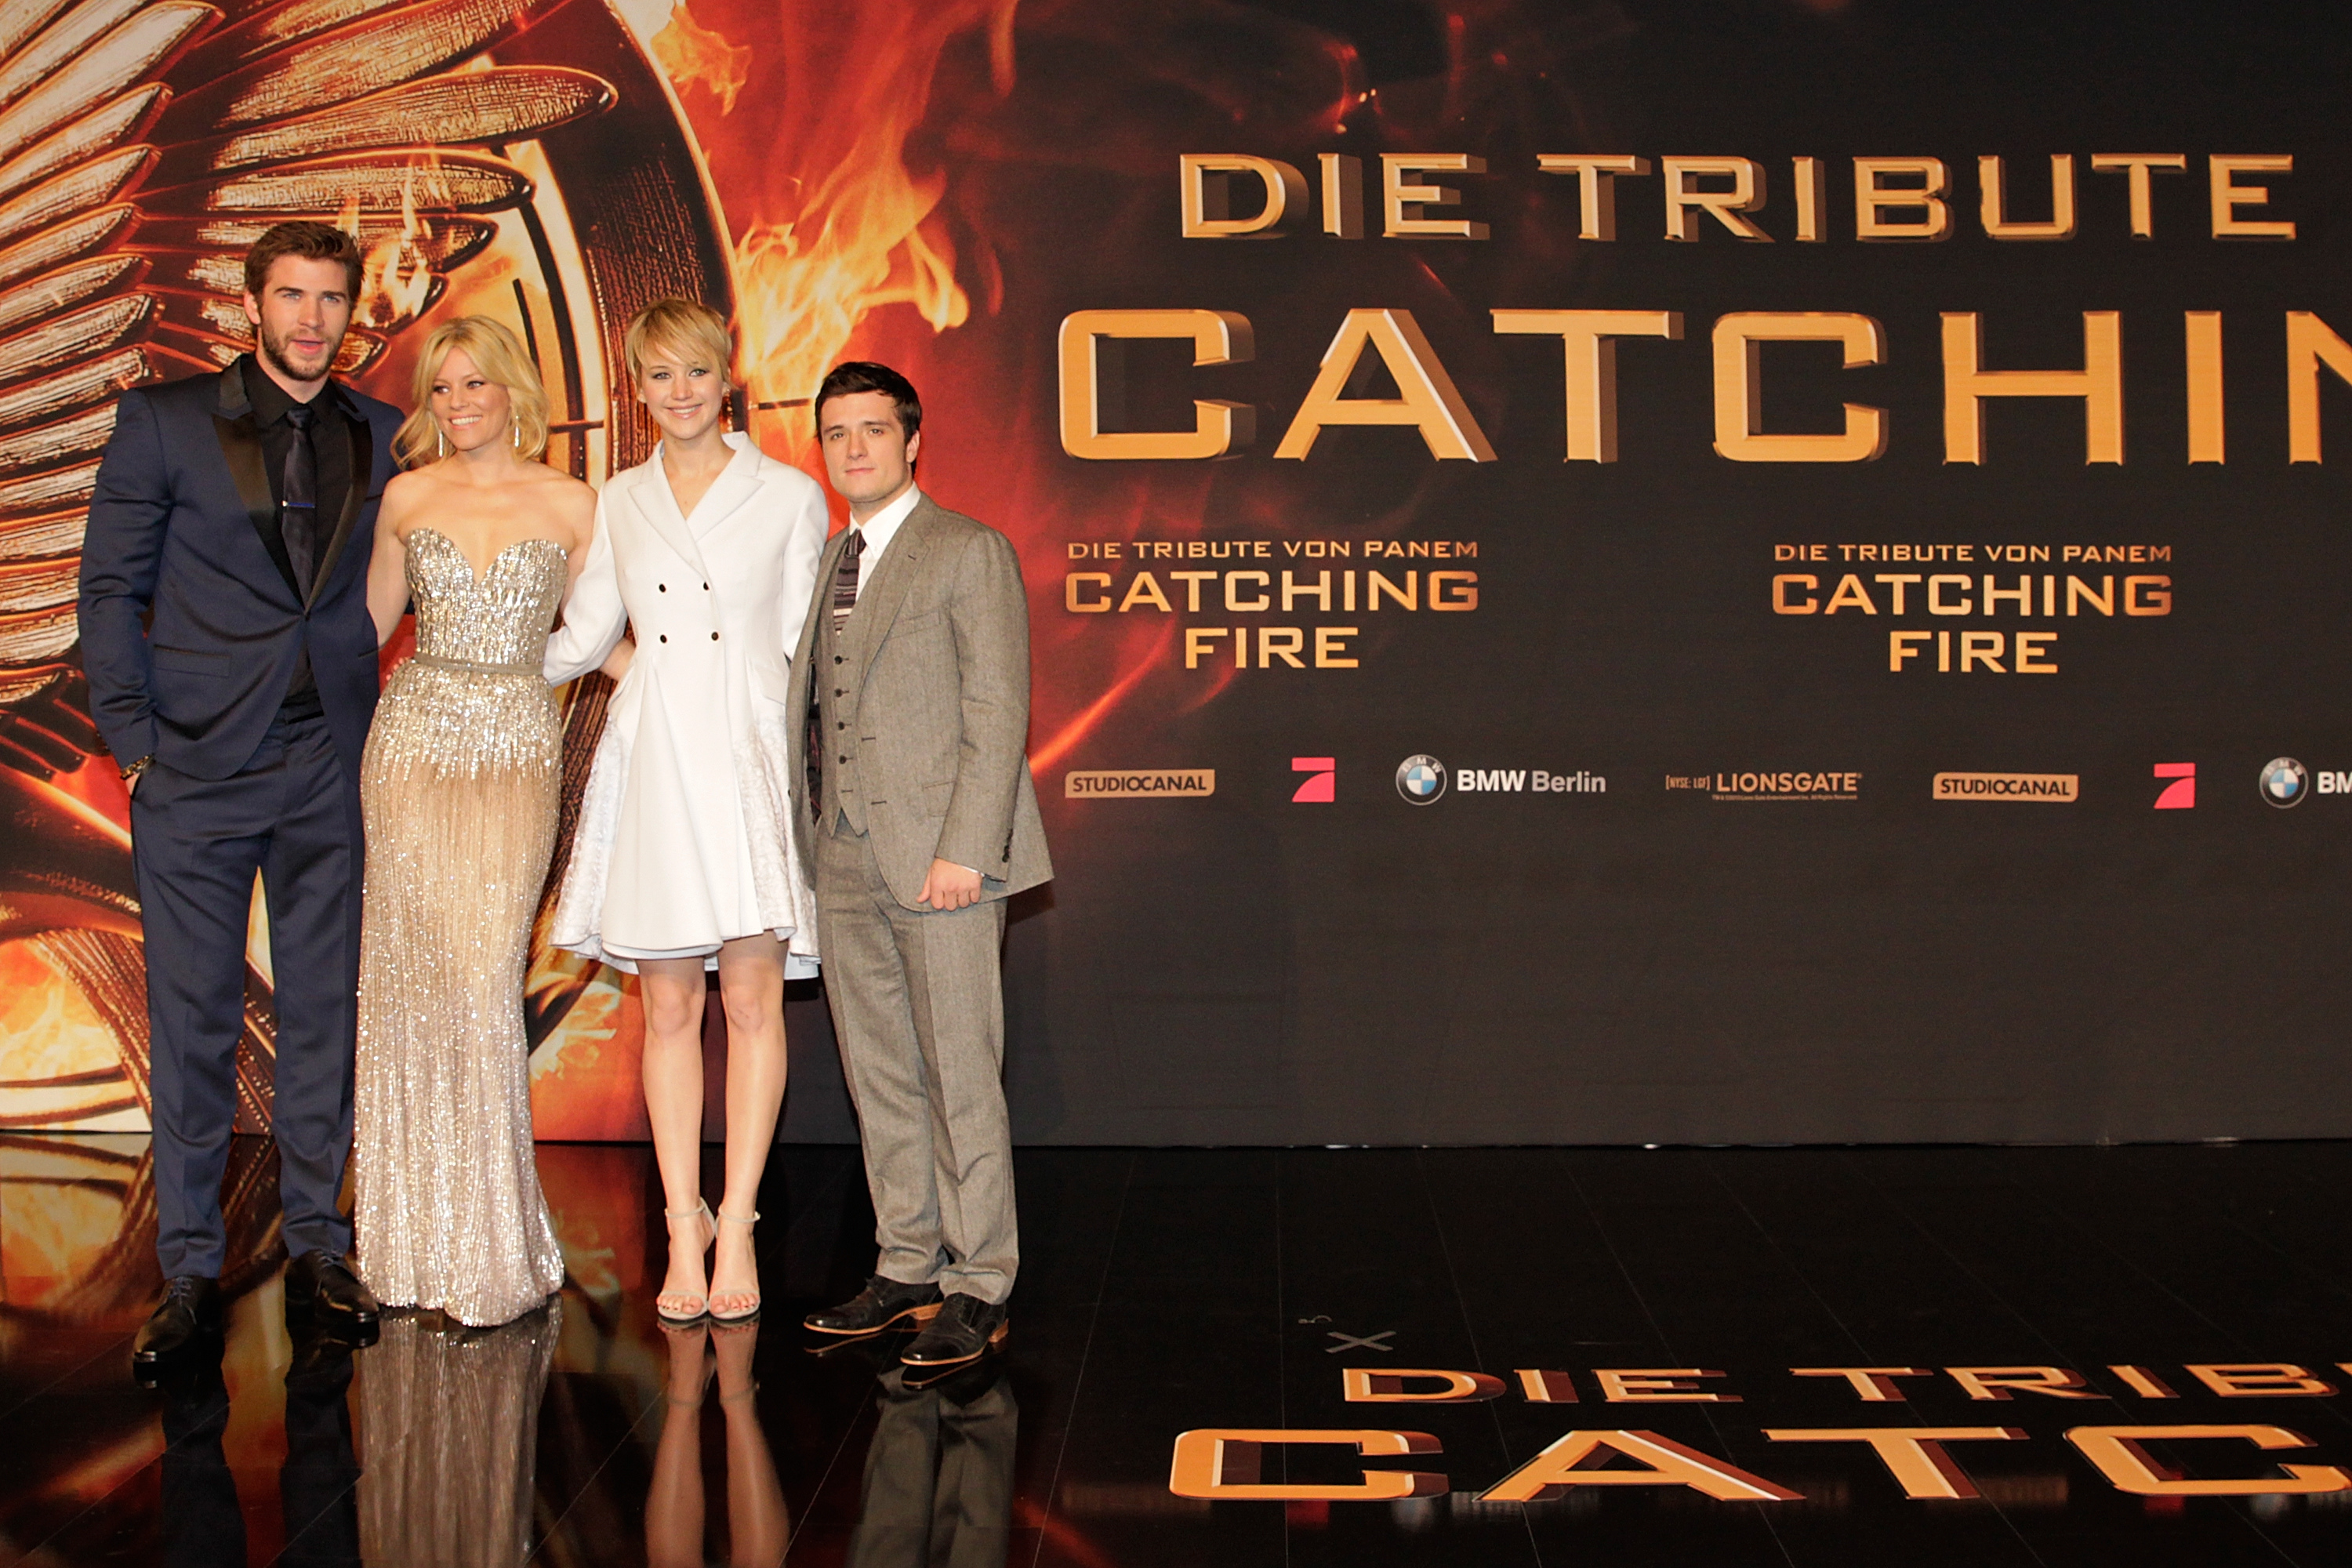 Liam Hemsworth, Elizabeth Banks, Jennifer Lawrence and Josh Hutcherson attend the German premiere of the film <i>The Hunger Games - Catching Fire</i> on Nov. 12, 2013 in Berlin.